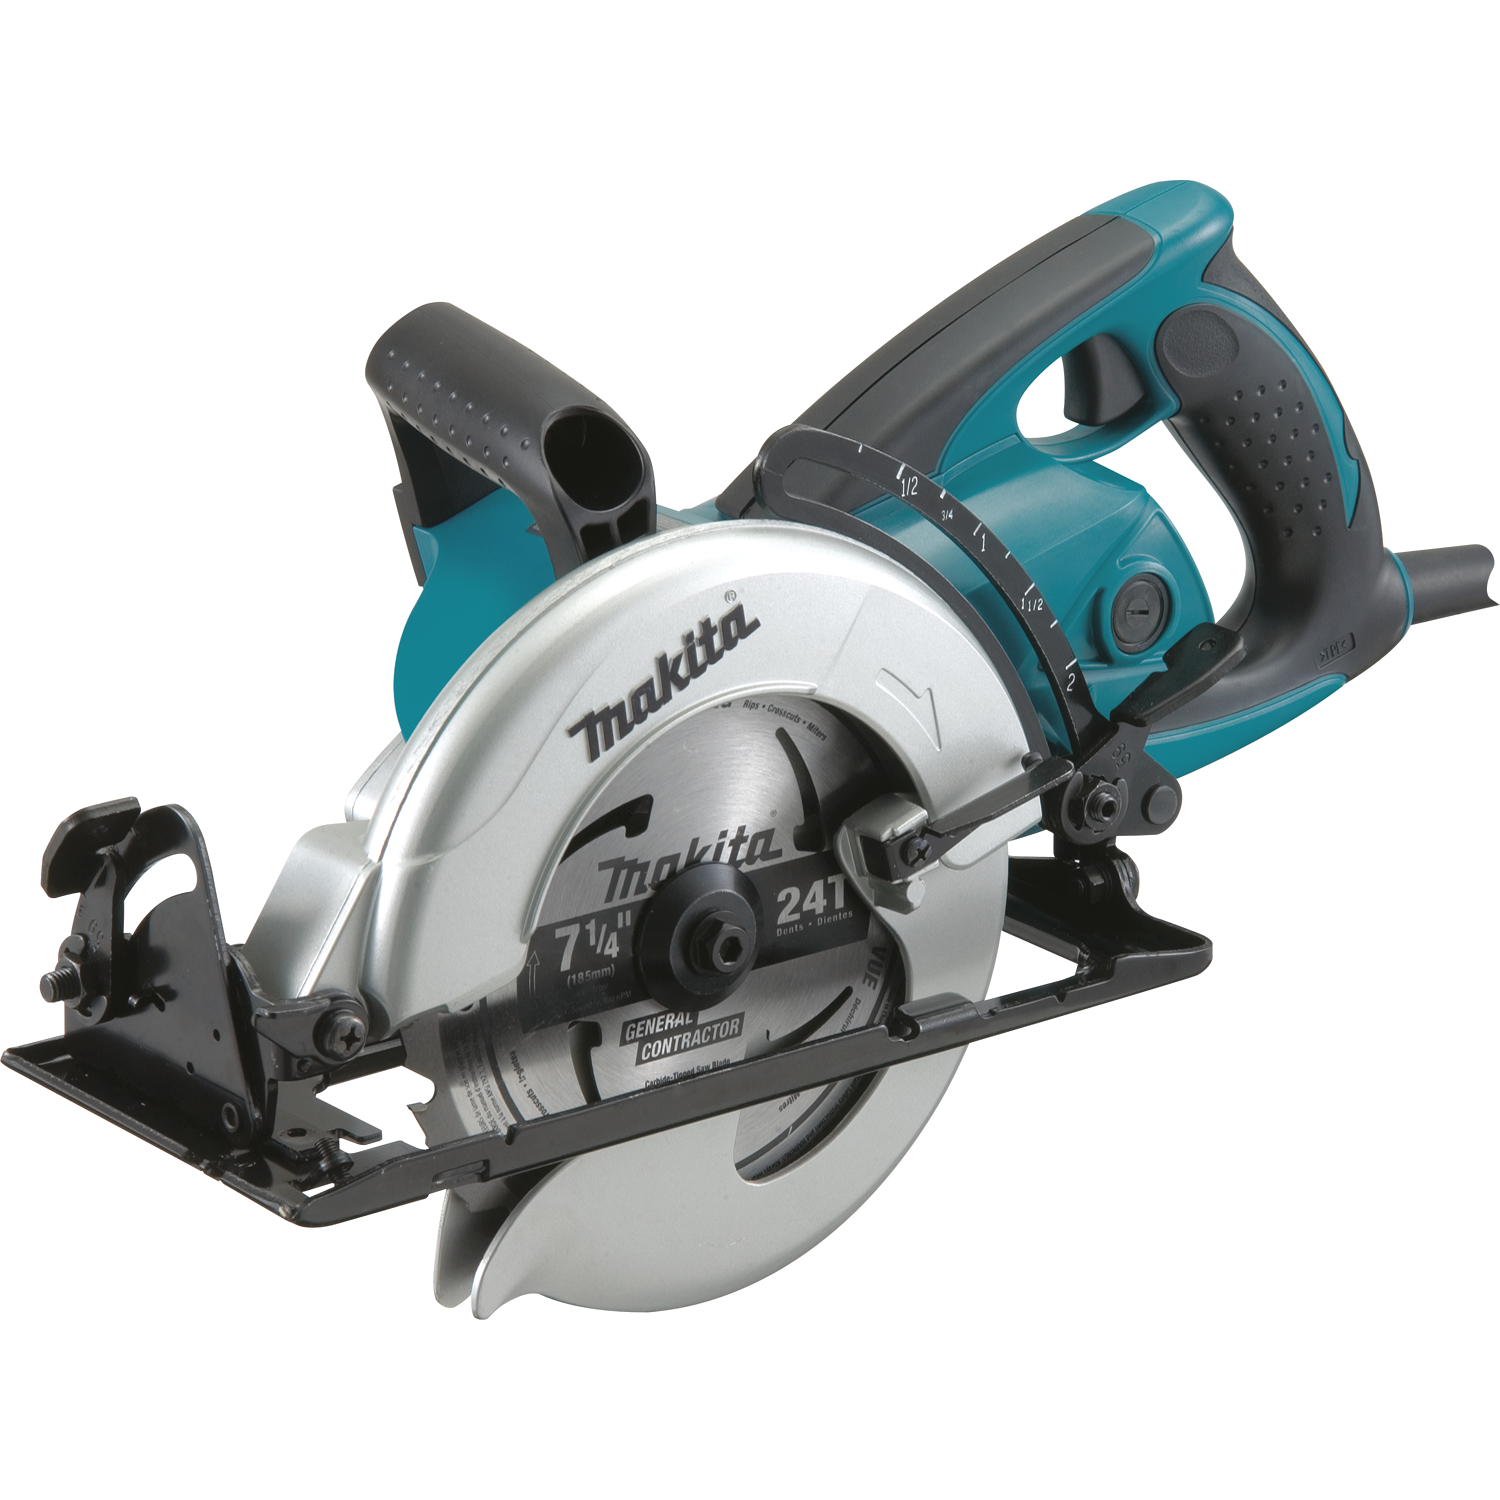 Makita usa product details 5477nb 5477nb greentooth Images